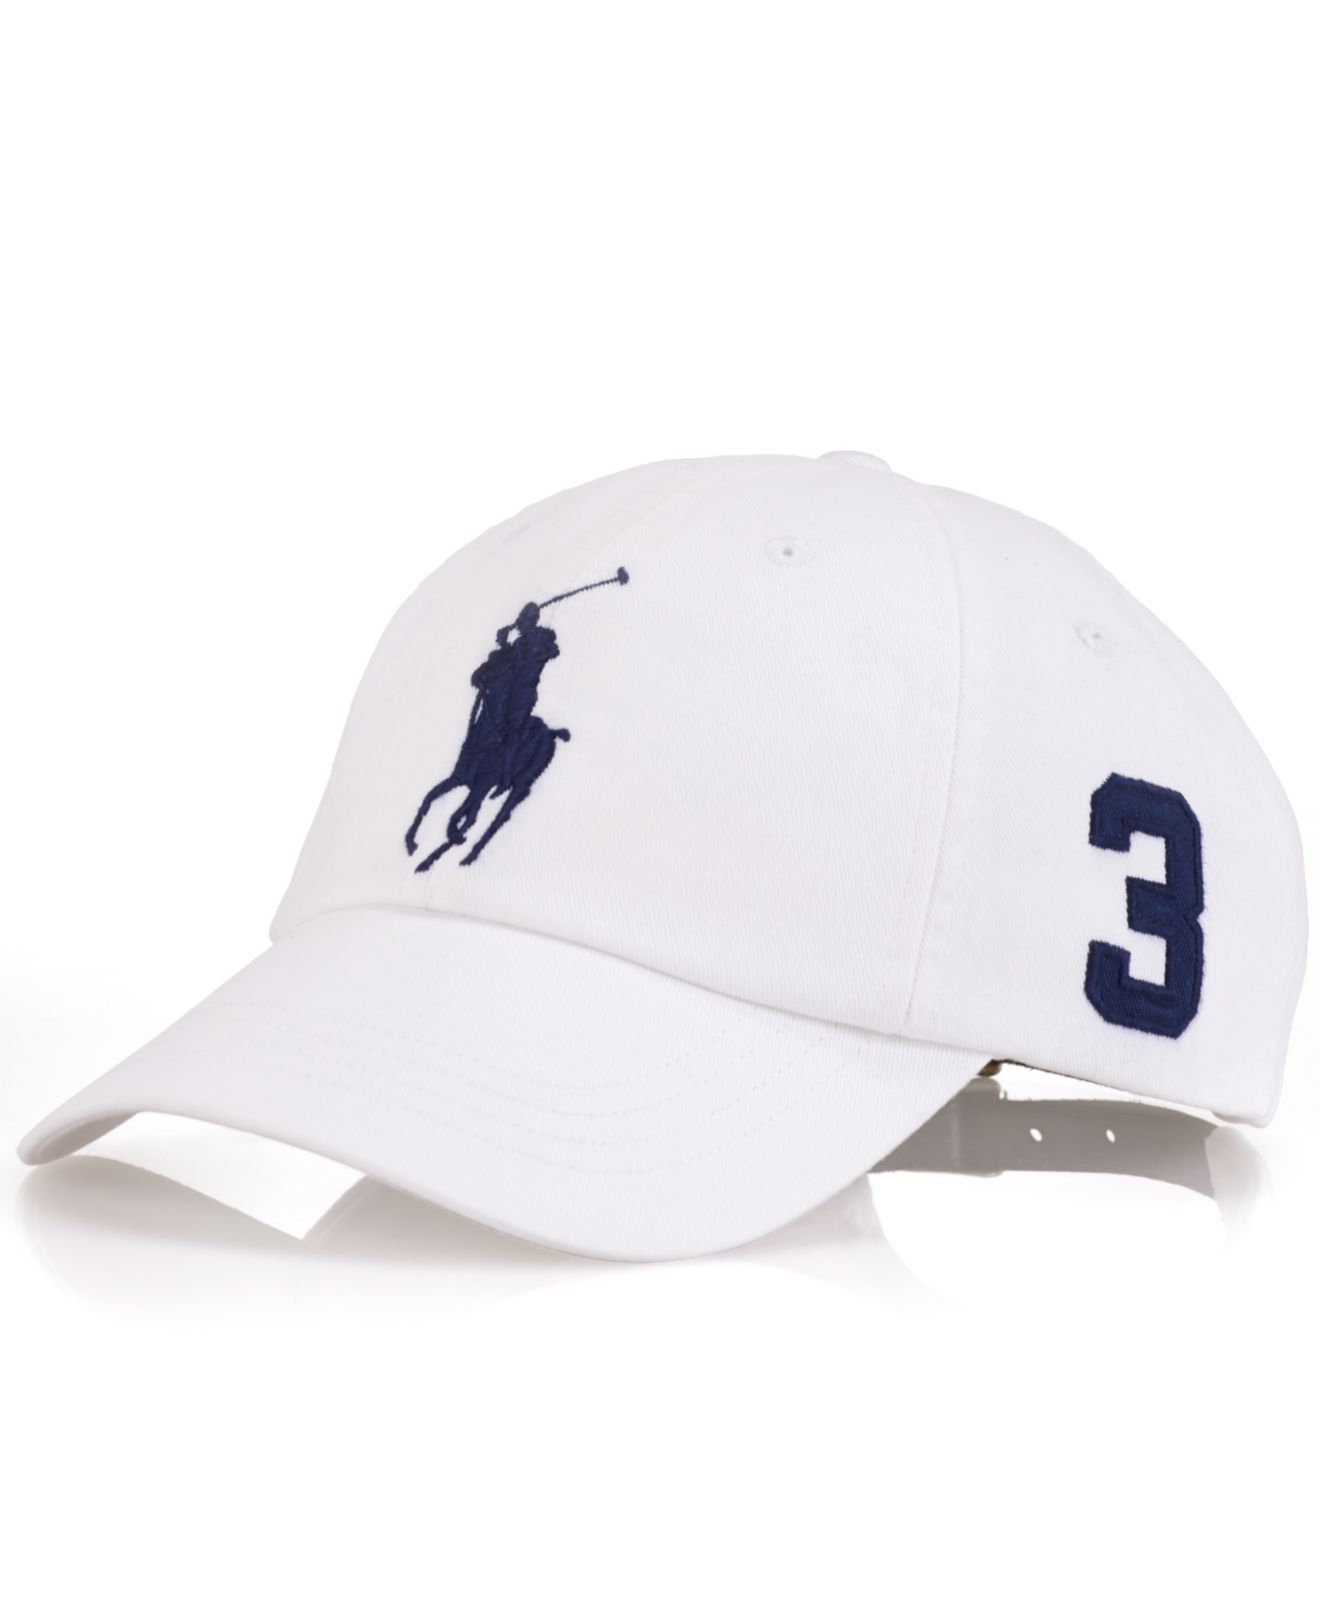 Lyst - Polo Ralph Lauren Classic Chino Sports Cap in White for Men f17fe8abe889